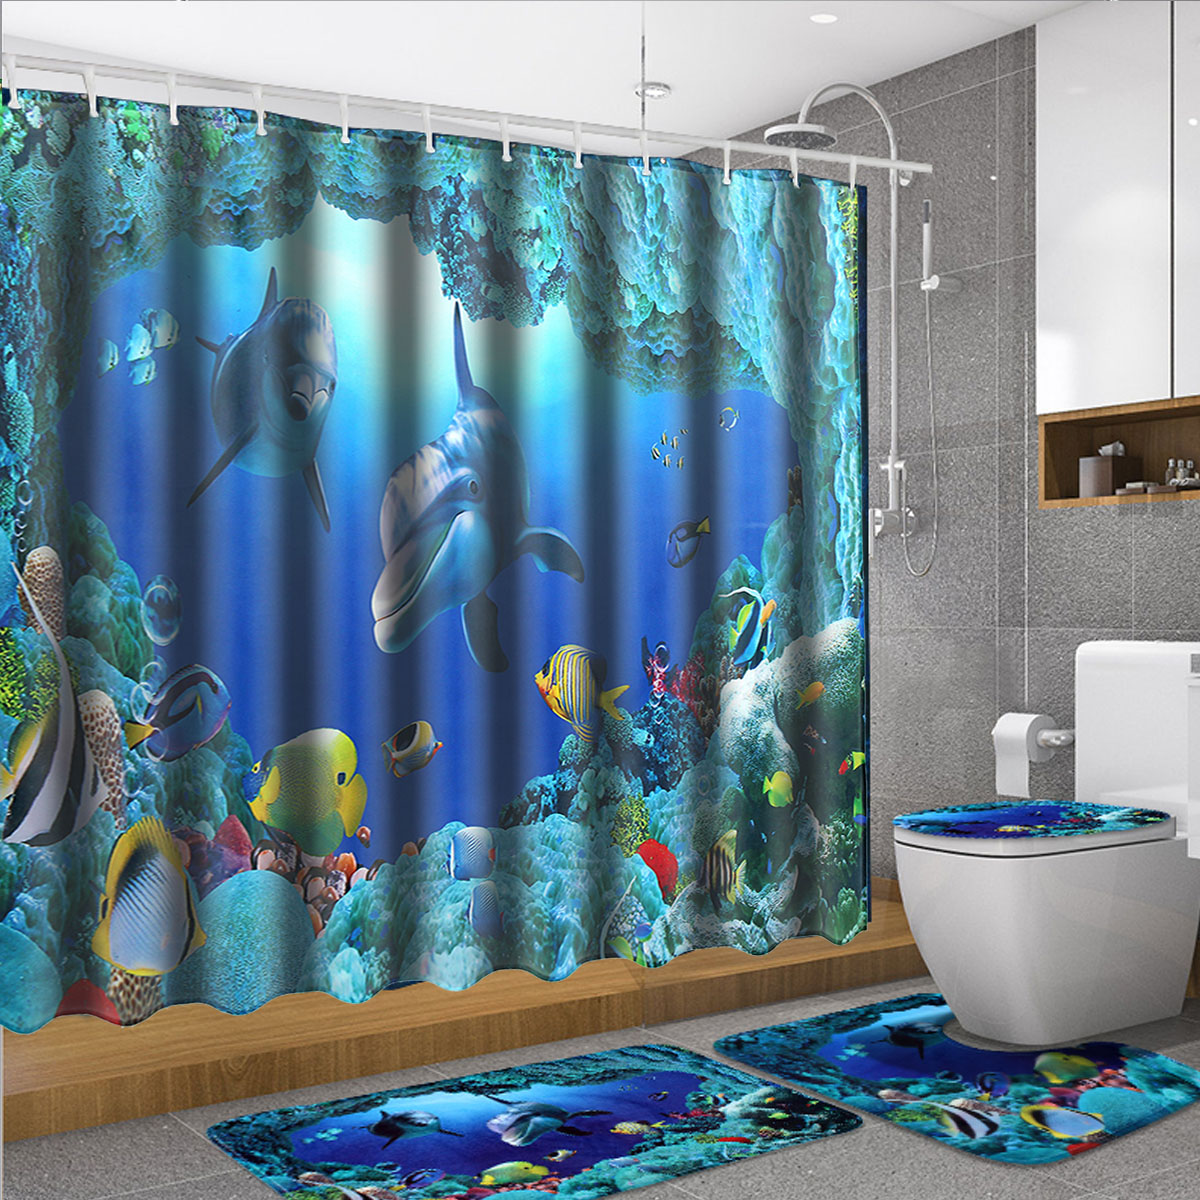 Us 11 37 16 Off 180x180cm Shower Curtain 4pcs Set Bath Mat Ocean Dolphin Deep Sea Bathroom Waterproof With 12 Hooks Toilet Cover Bath Mat Set In